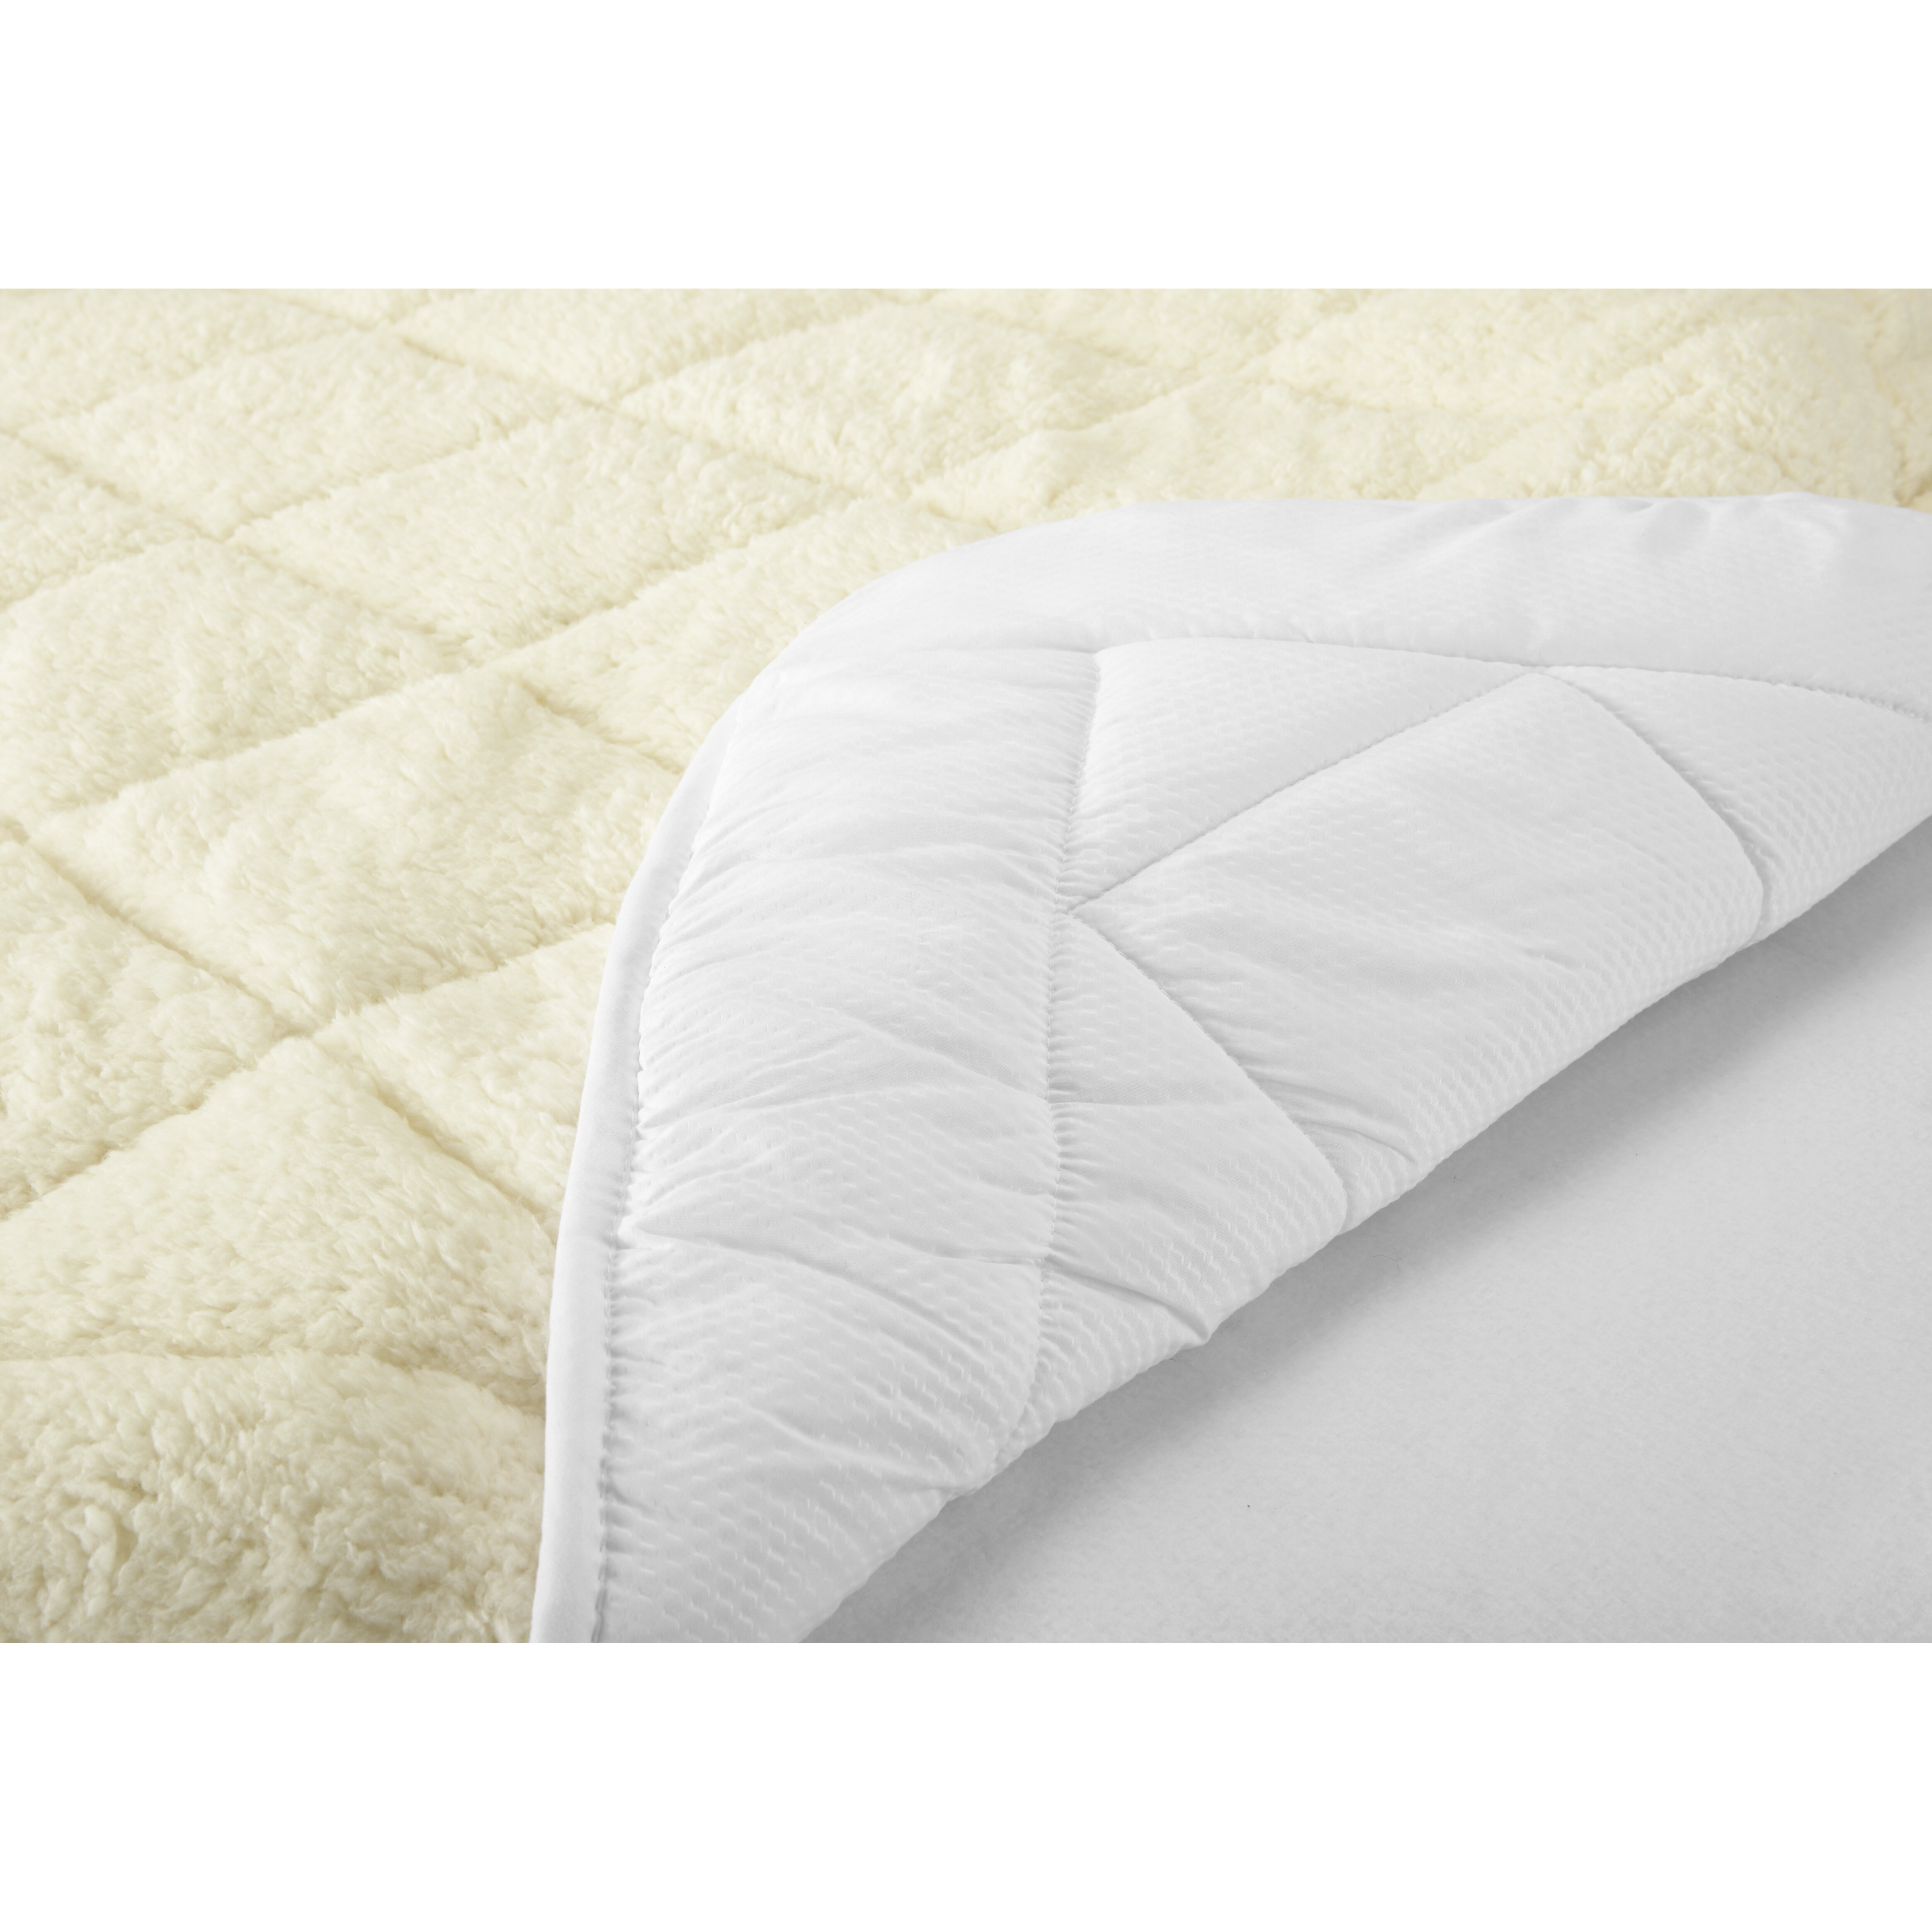 sleeper sofa waterproof mattress pad 28 images  : Home Fashion Design All Season Two in One Reversible Quilted Mattress Pad HFAS1167 from americanhomesforsale.us size 4660 x 4660 jpeg 1577kB